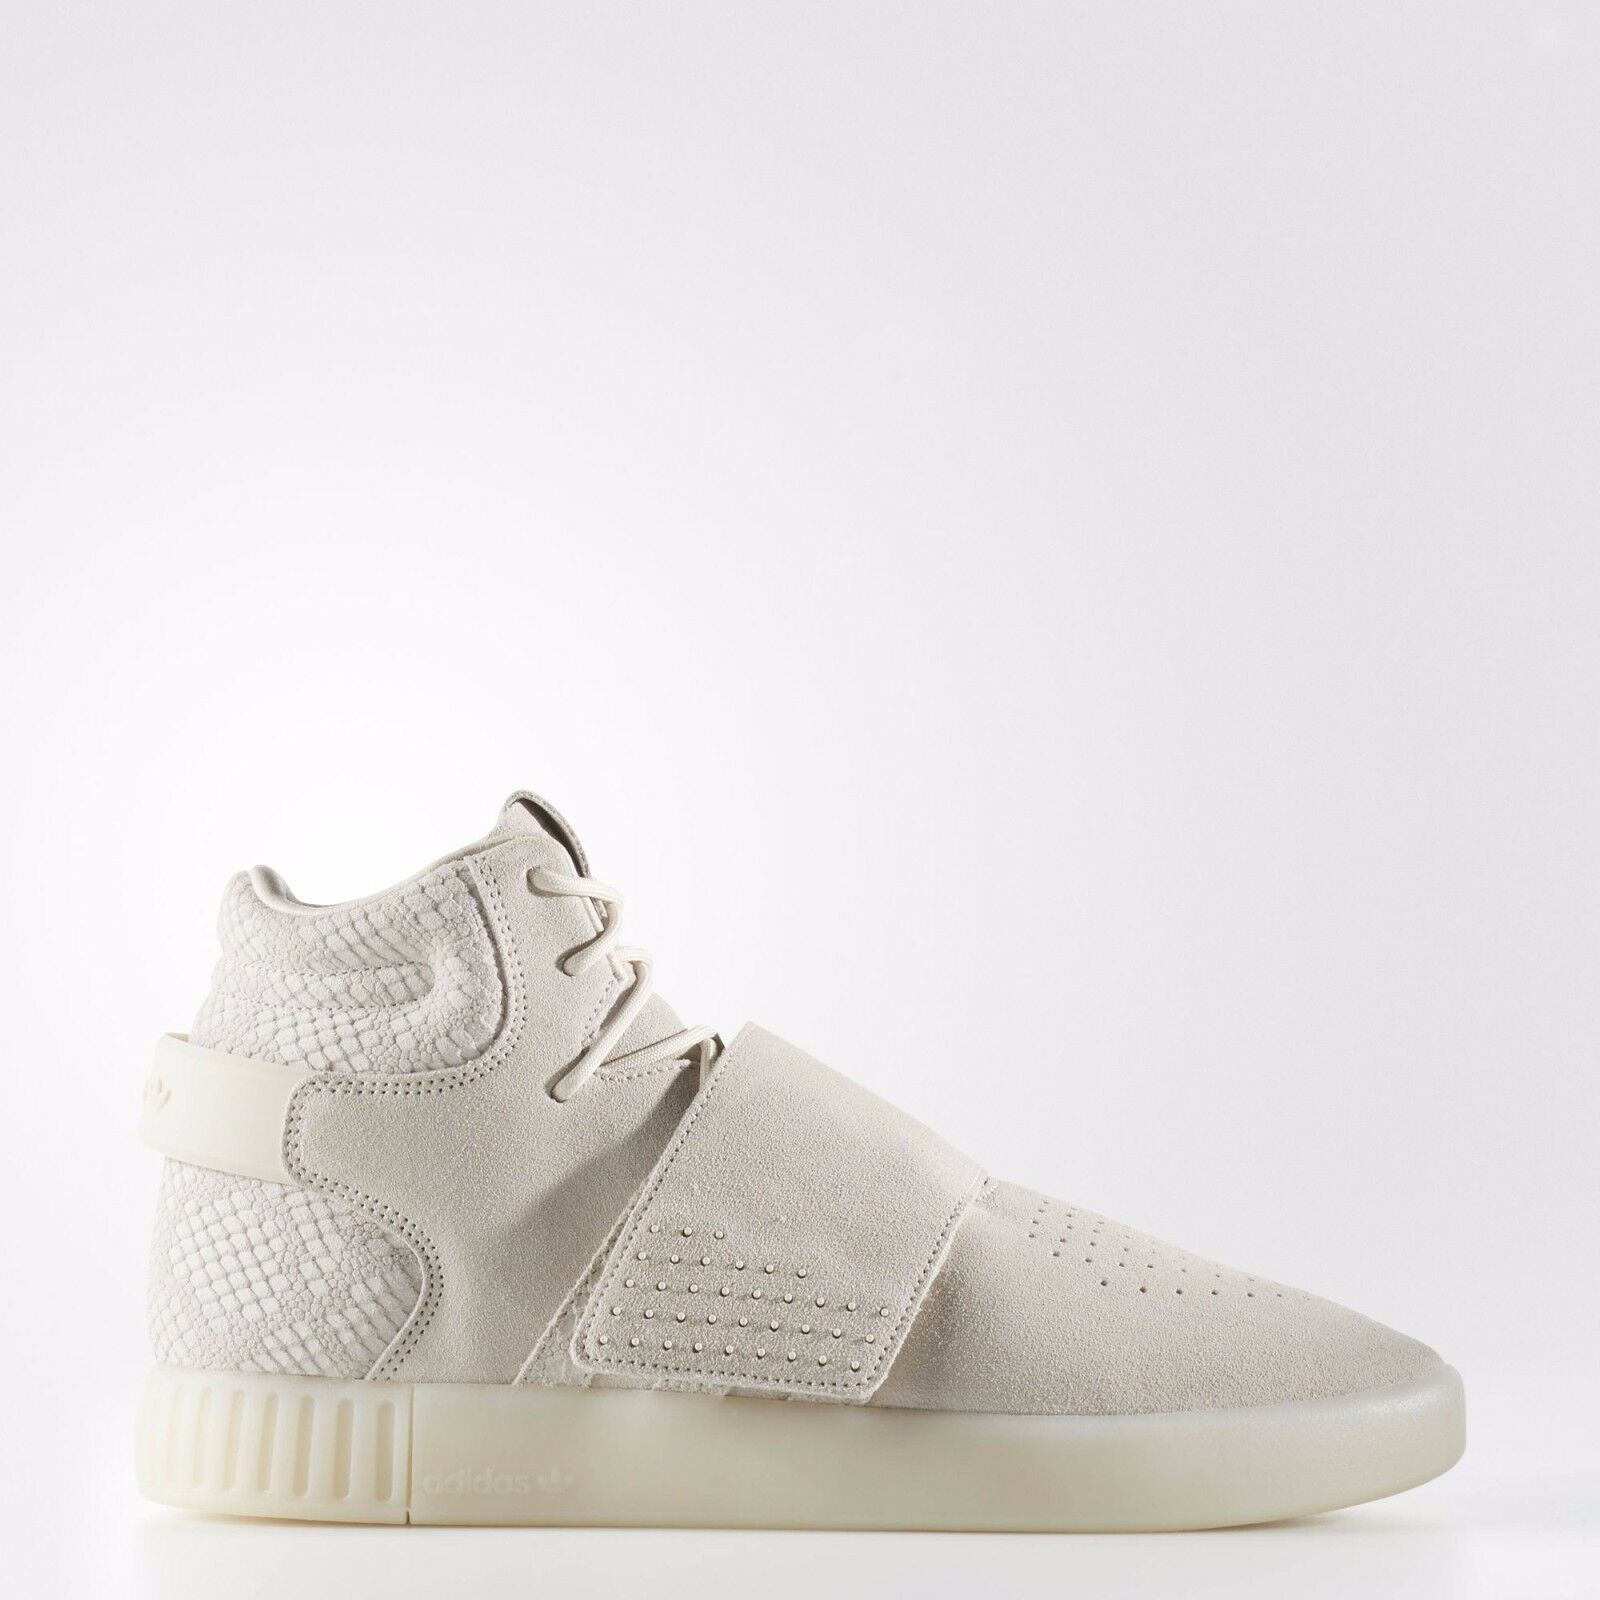 NEW MENS ADIDAS TUBULAR INVADER STRAP BB8943 SNEAKERS-SHOES-SIZE 11,12